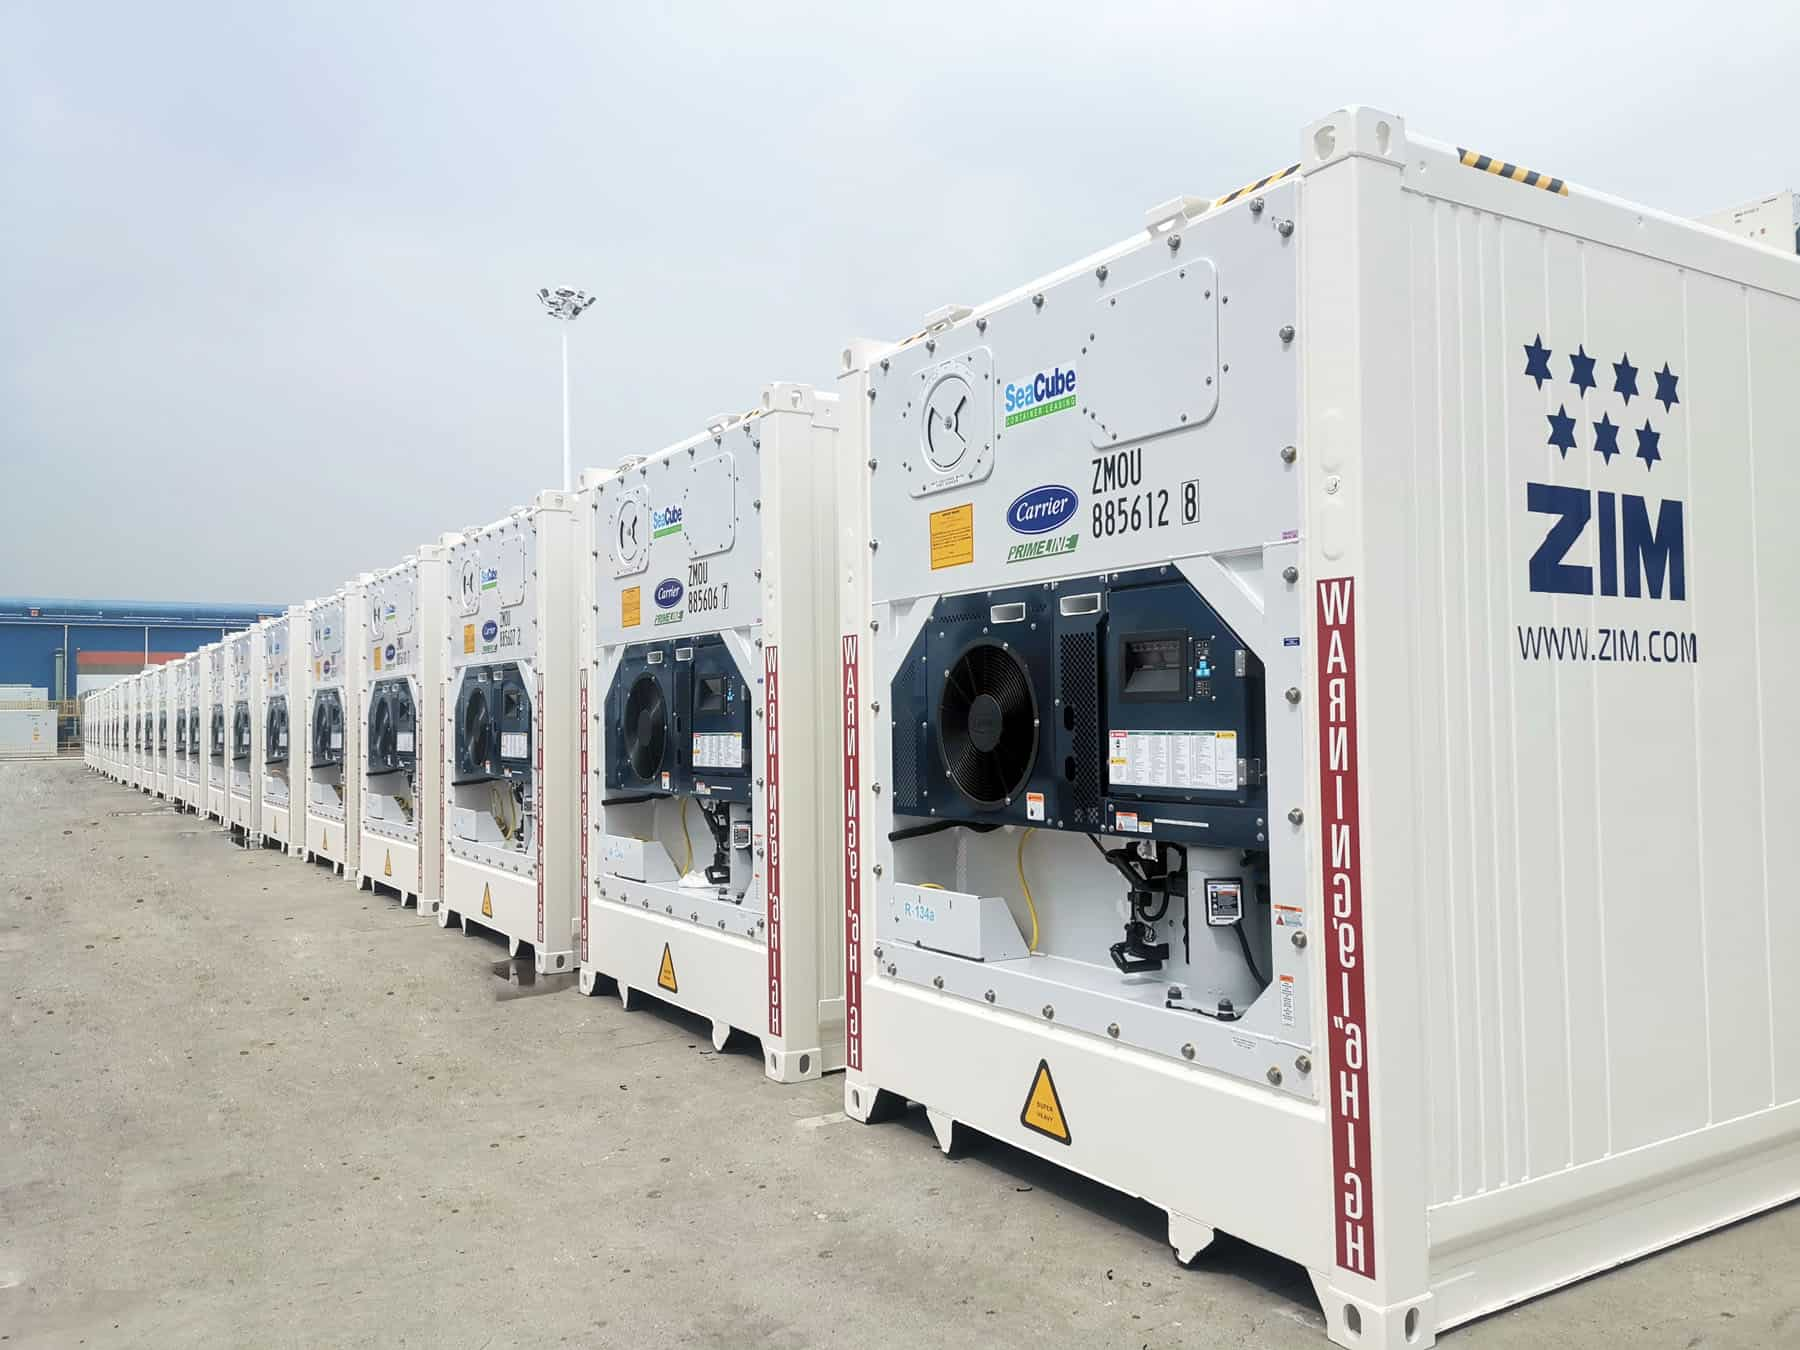 ZIM adds 1,000 Carrier Transicold PrimeLINE units to ship high-value perishable cargo